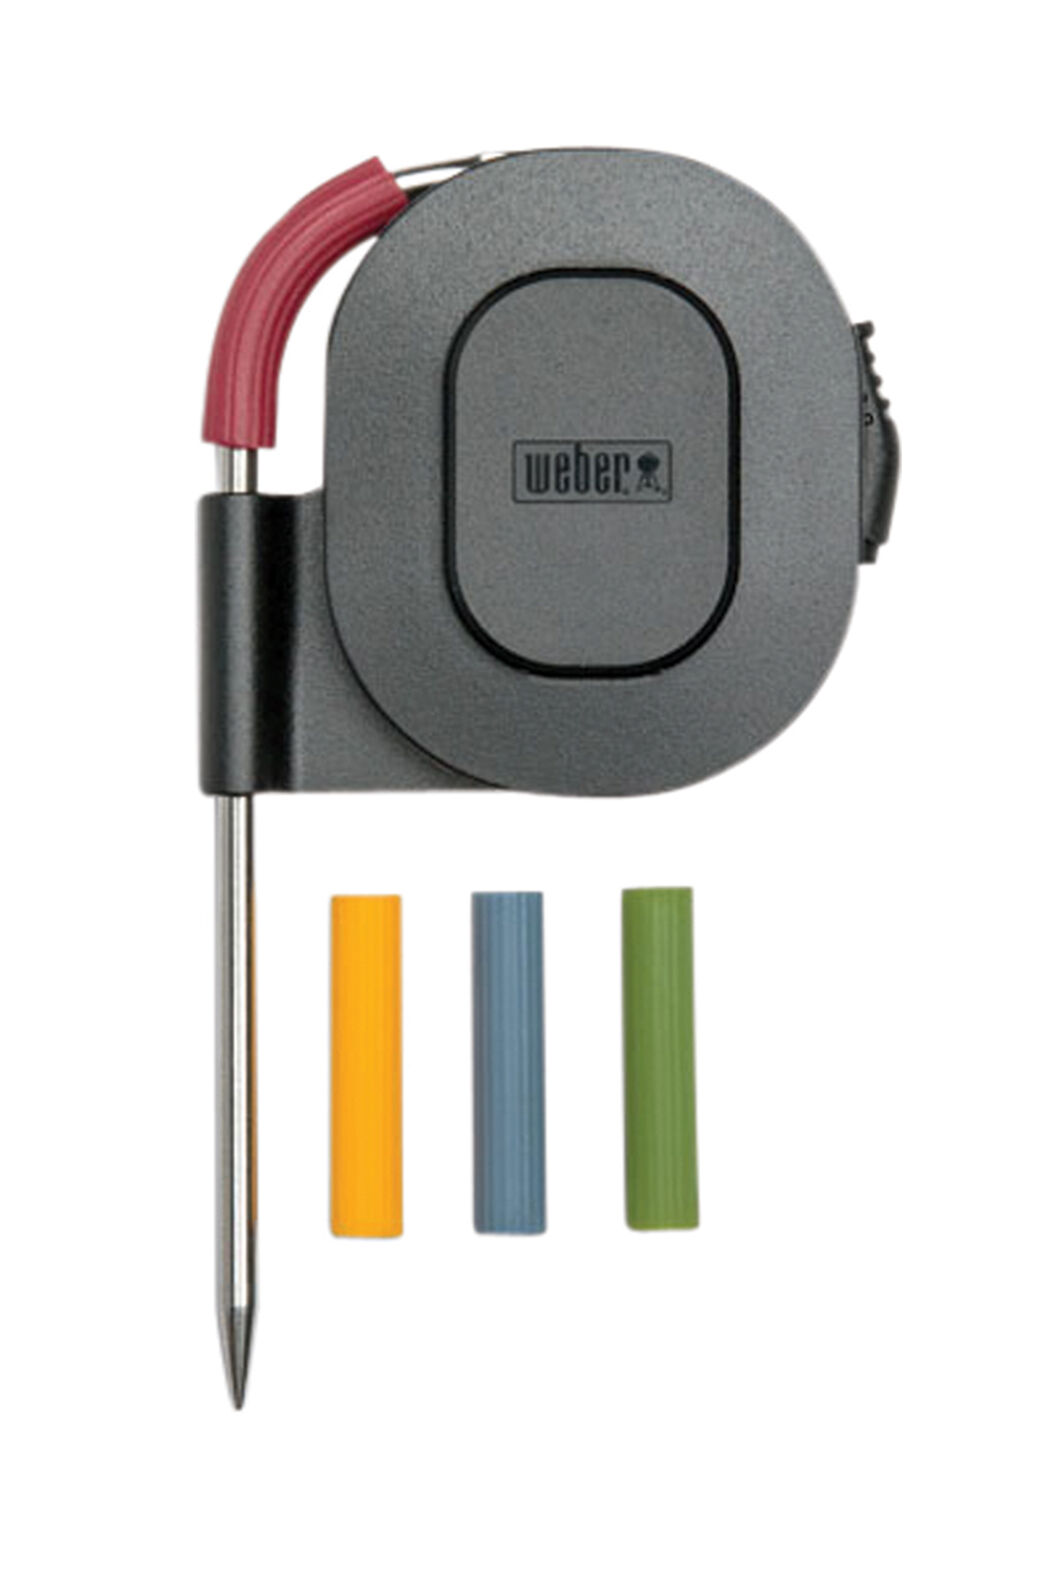 Weber grill Thermometer Probe, None, hi-res